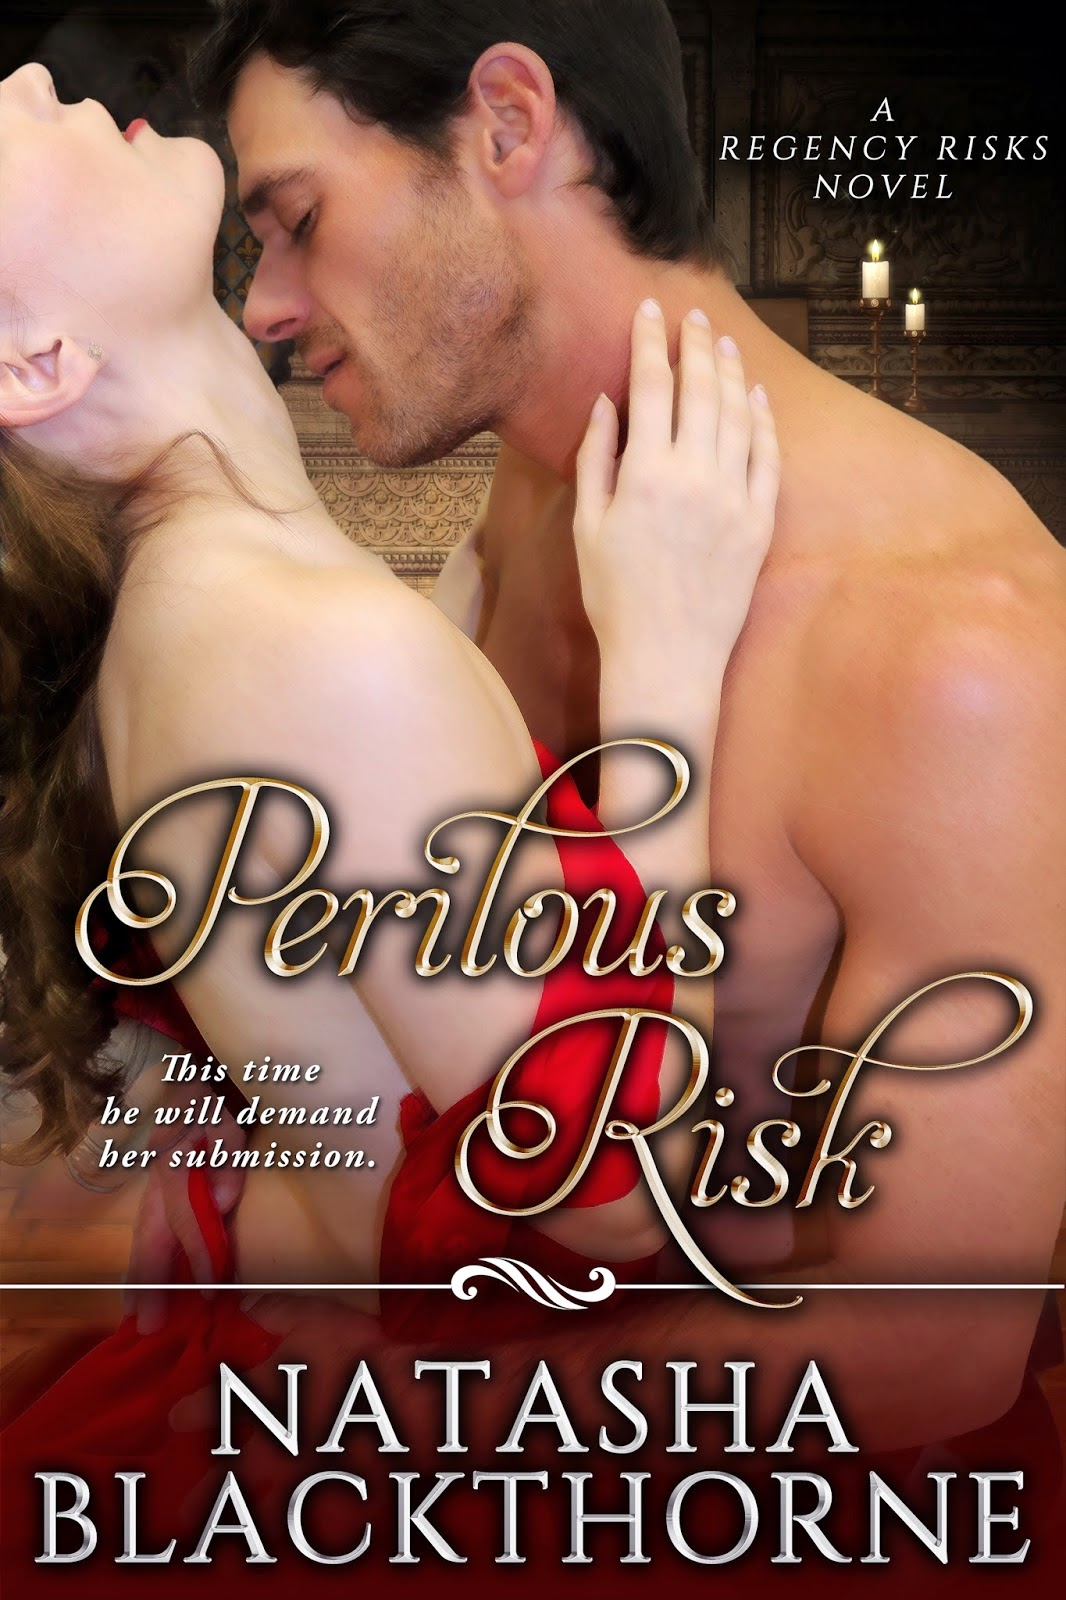 http://www.amazon.com/Perilous-Risk-Regency-Risks-Book-ebook/dp/B00O3L70KU/ref=sr_1_1?ie=UTF8&qid=1412691318&sr=8-1&keywords=A+Perilous+Risk+(Regency+Risks+Book+3)